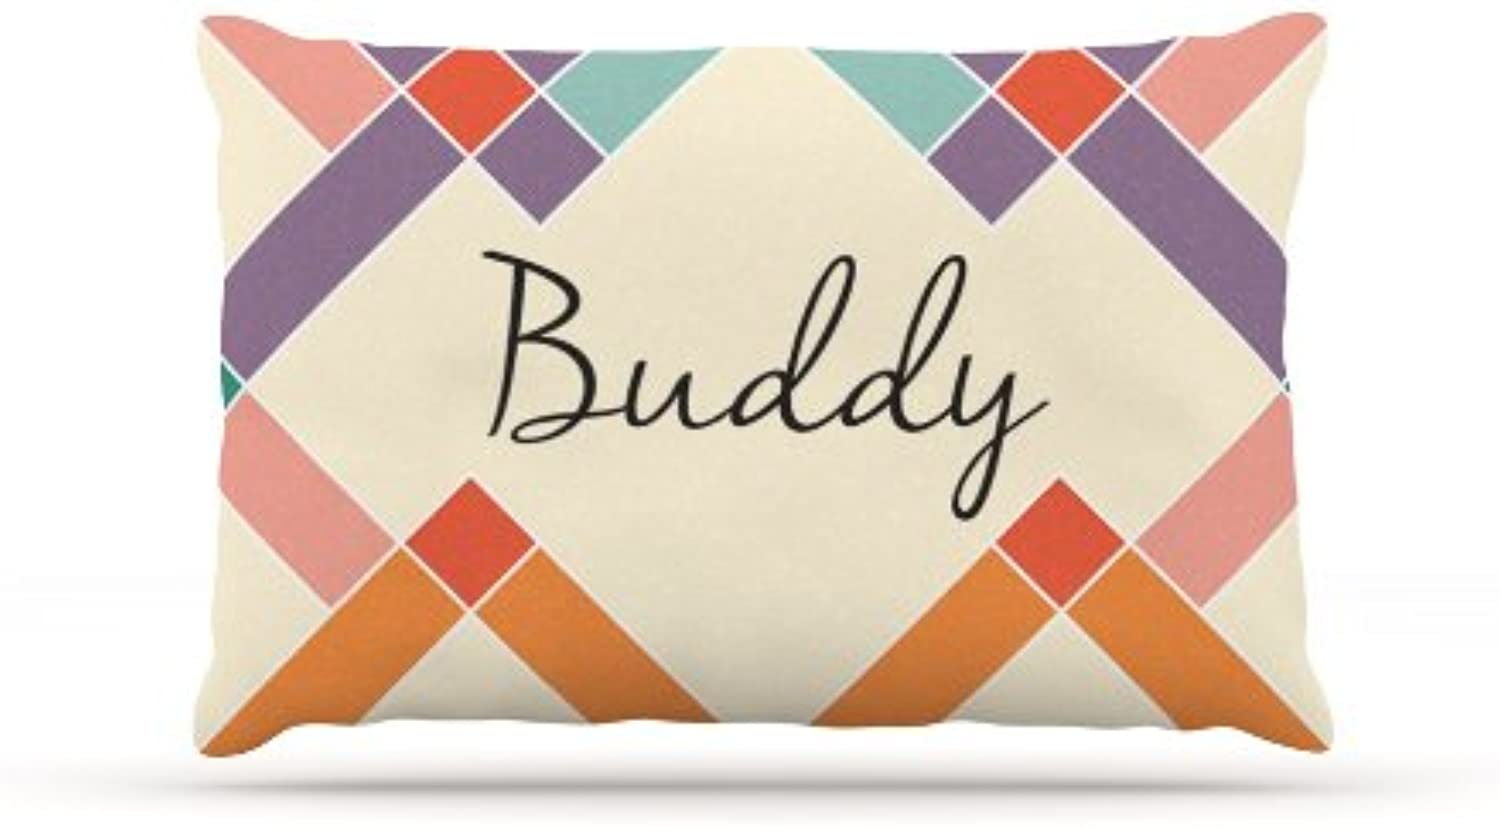 Kess InHouse Buddy  colorful Geometry Name Fleece Dog Bed, 30 by 40Inch, Rainbow Tan